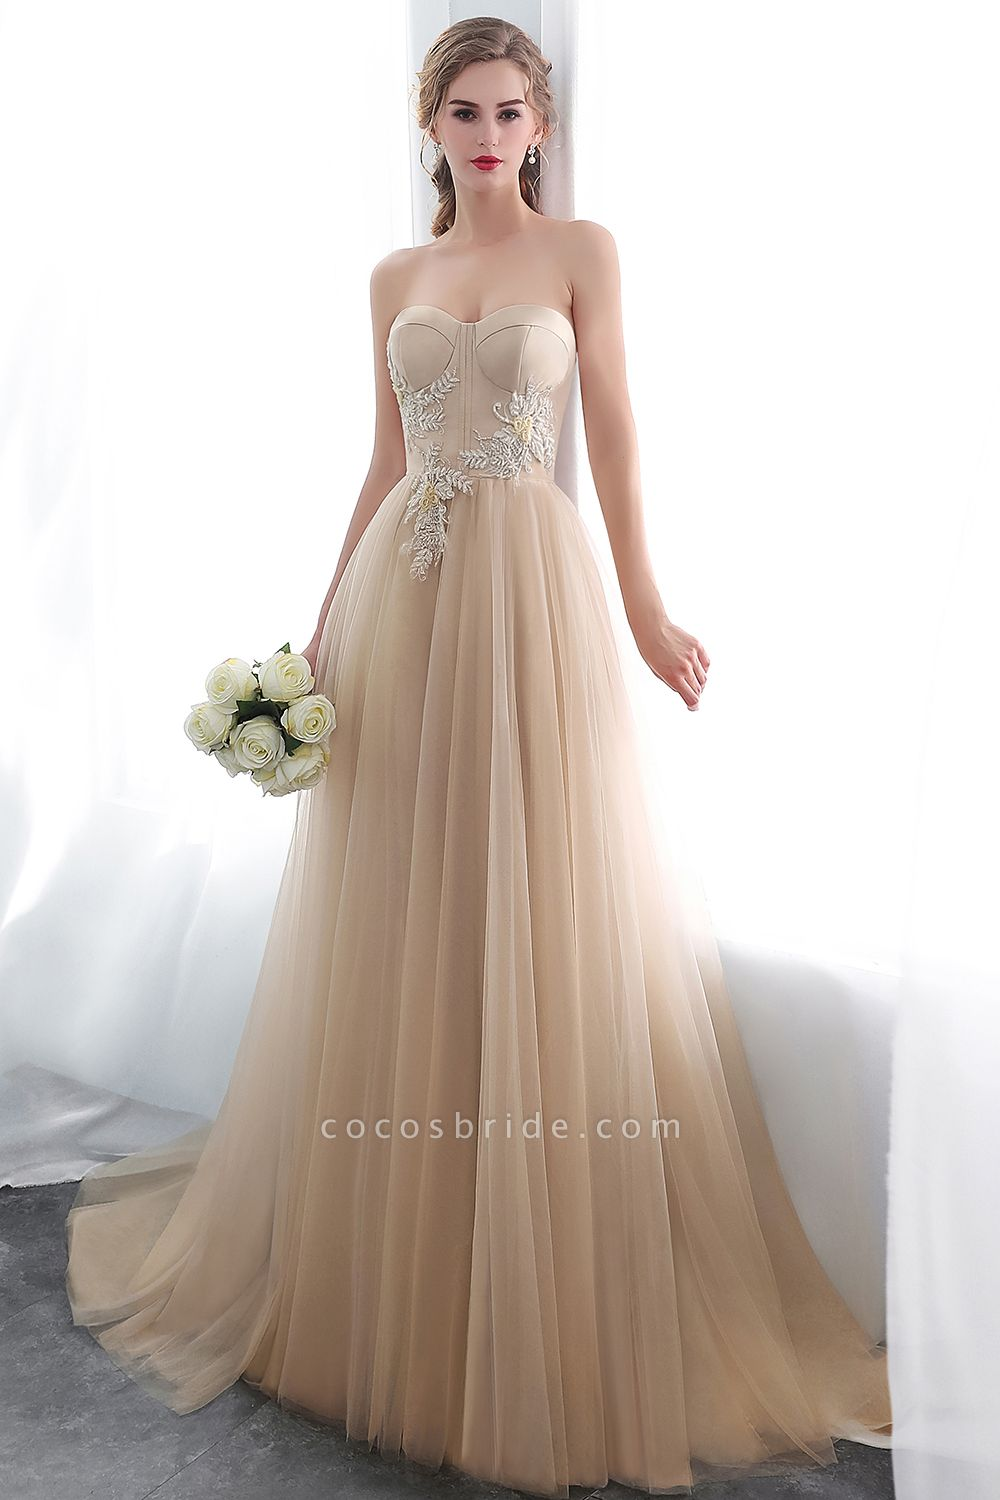 A-line Champagne Strapless Sweetheart Appliques Floor Length Evening Dresses